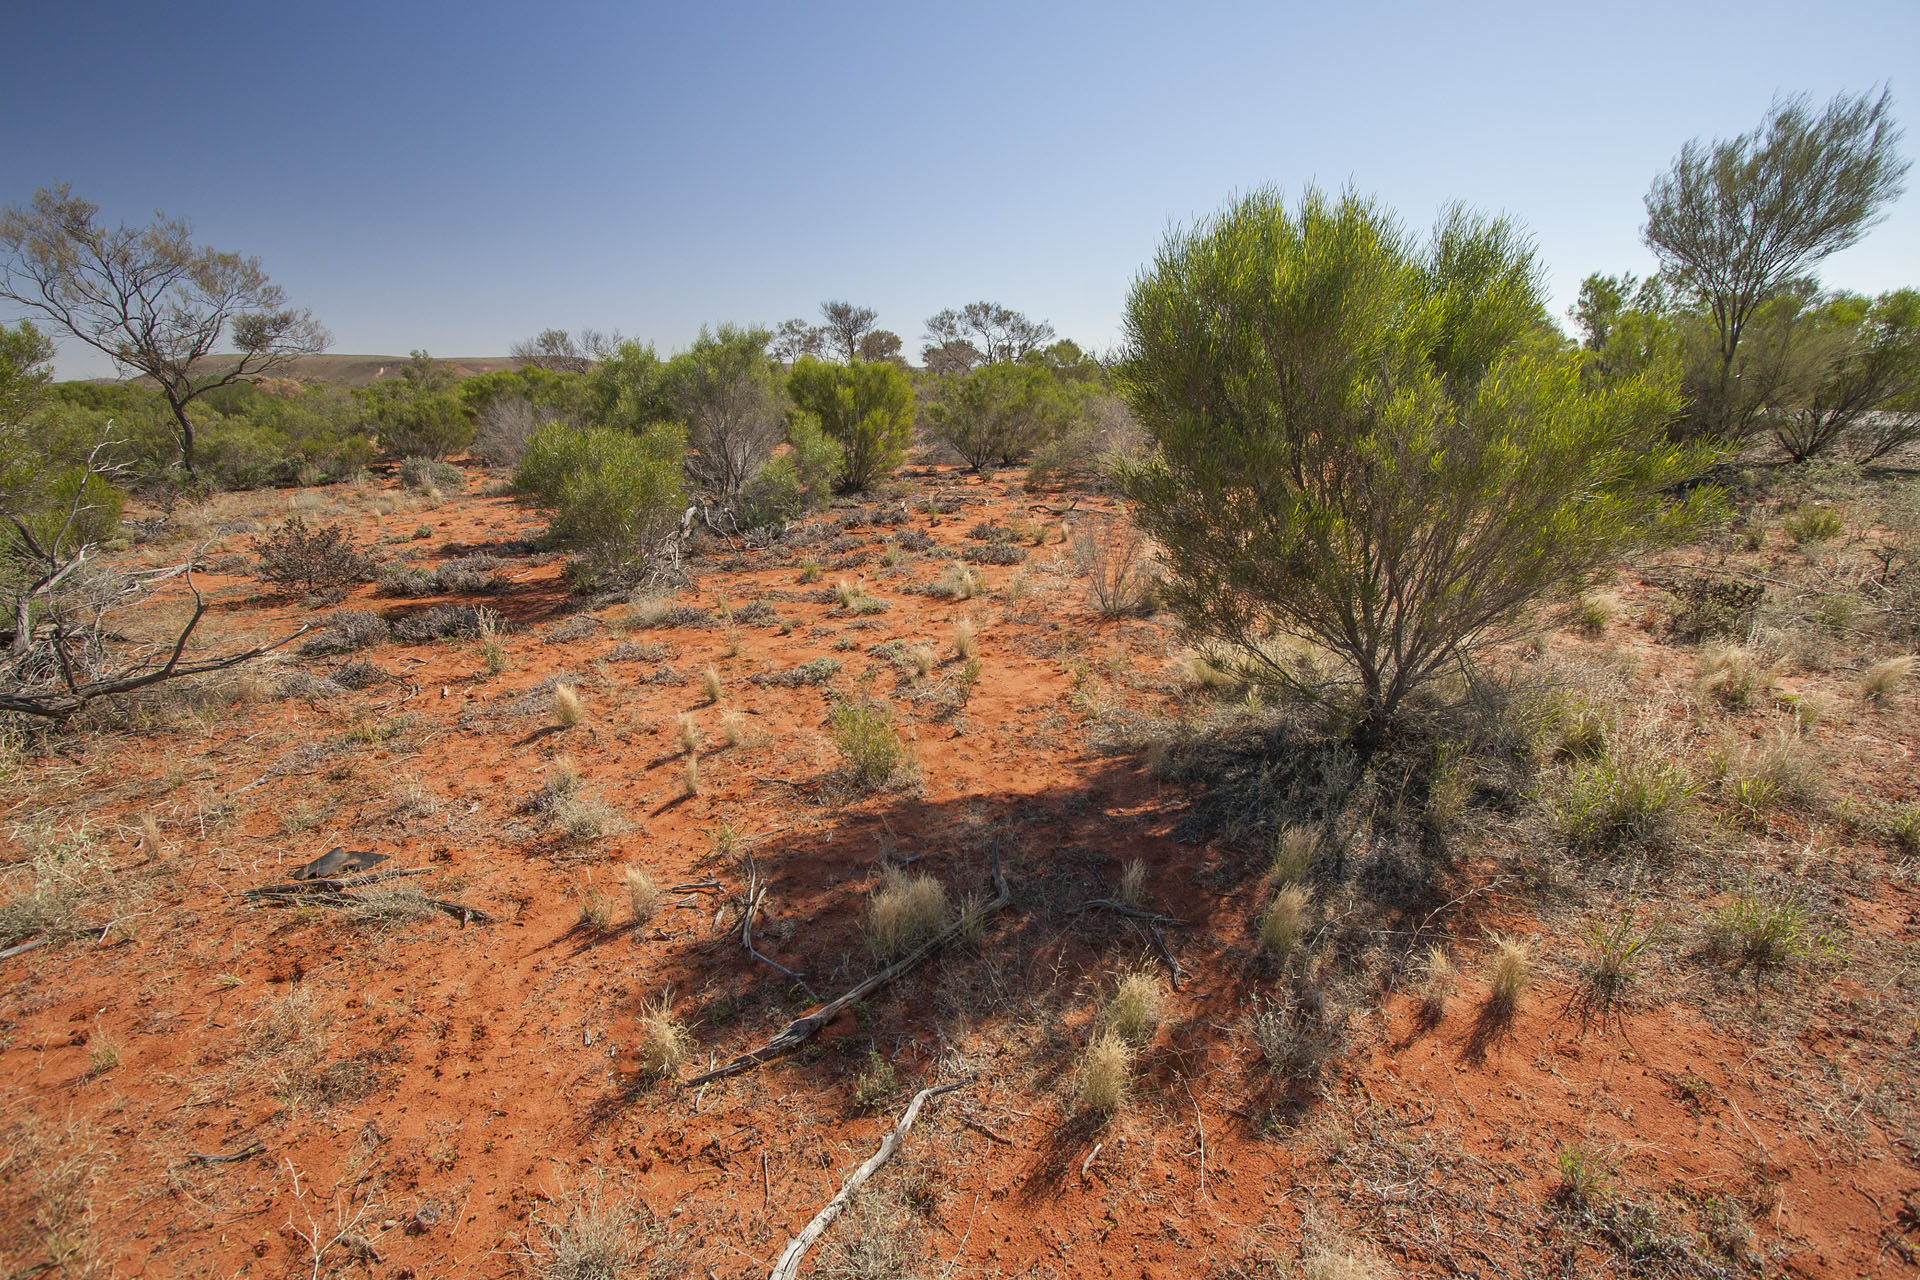 The unwelcoming outback.